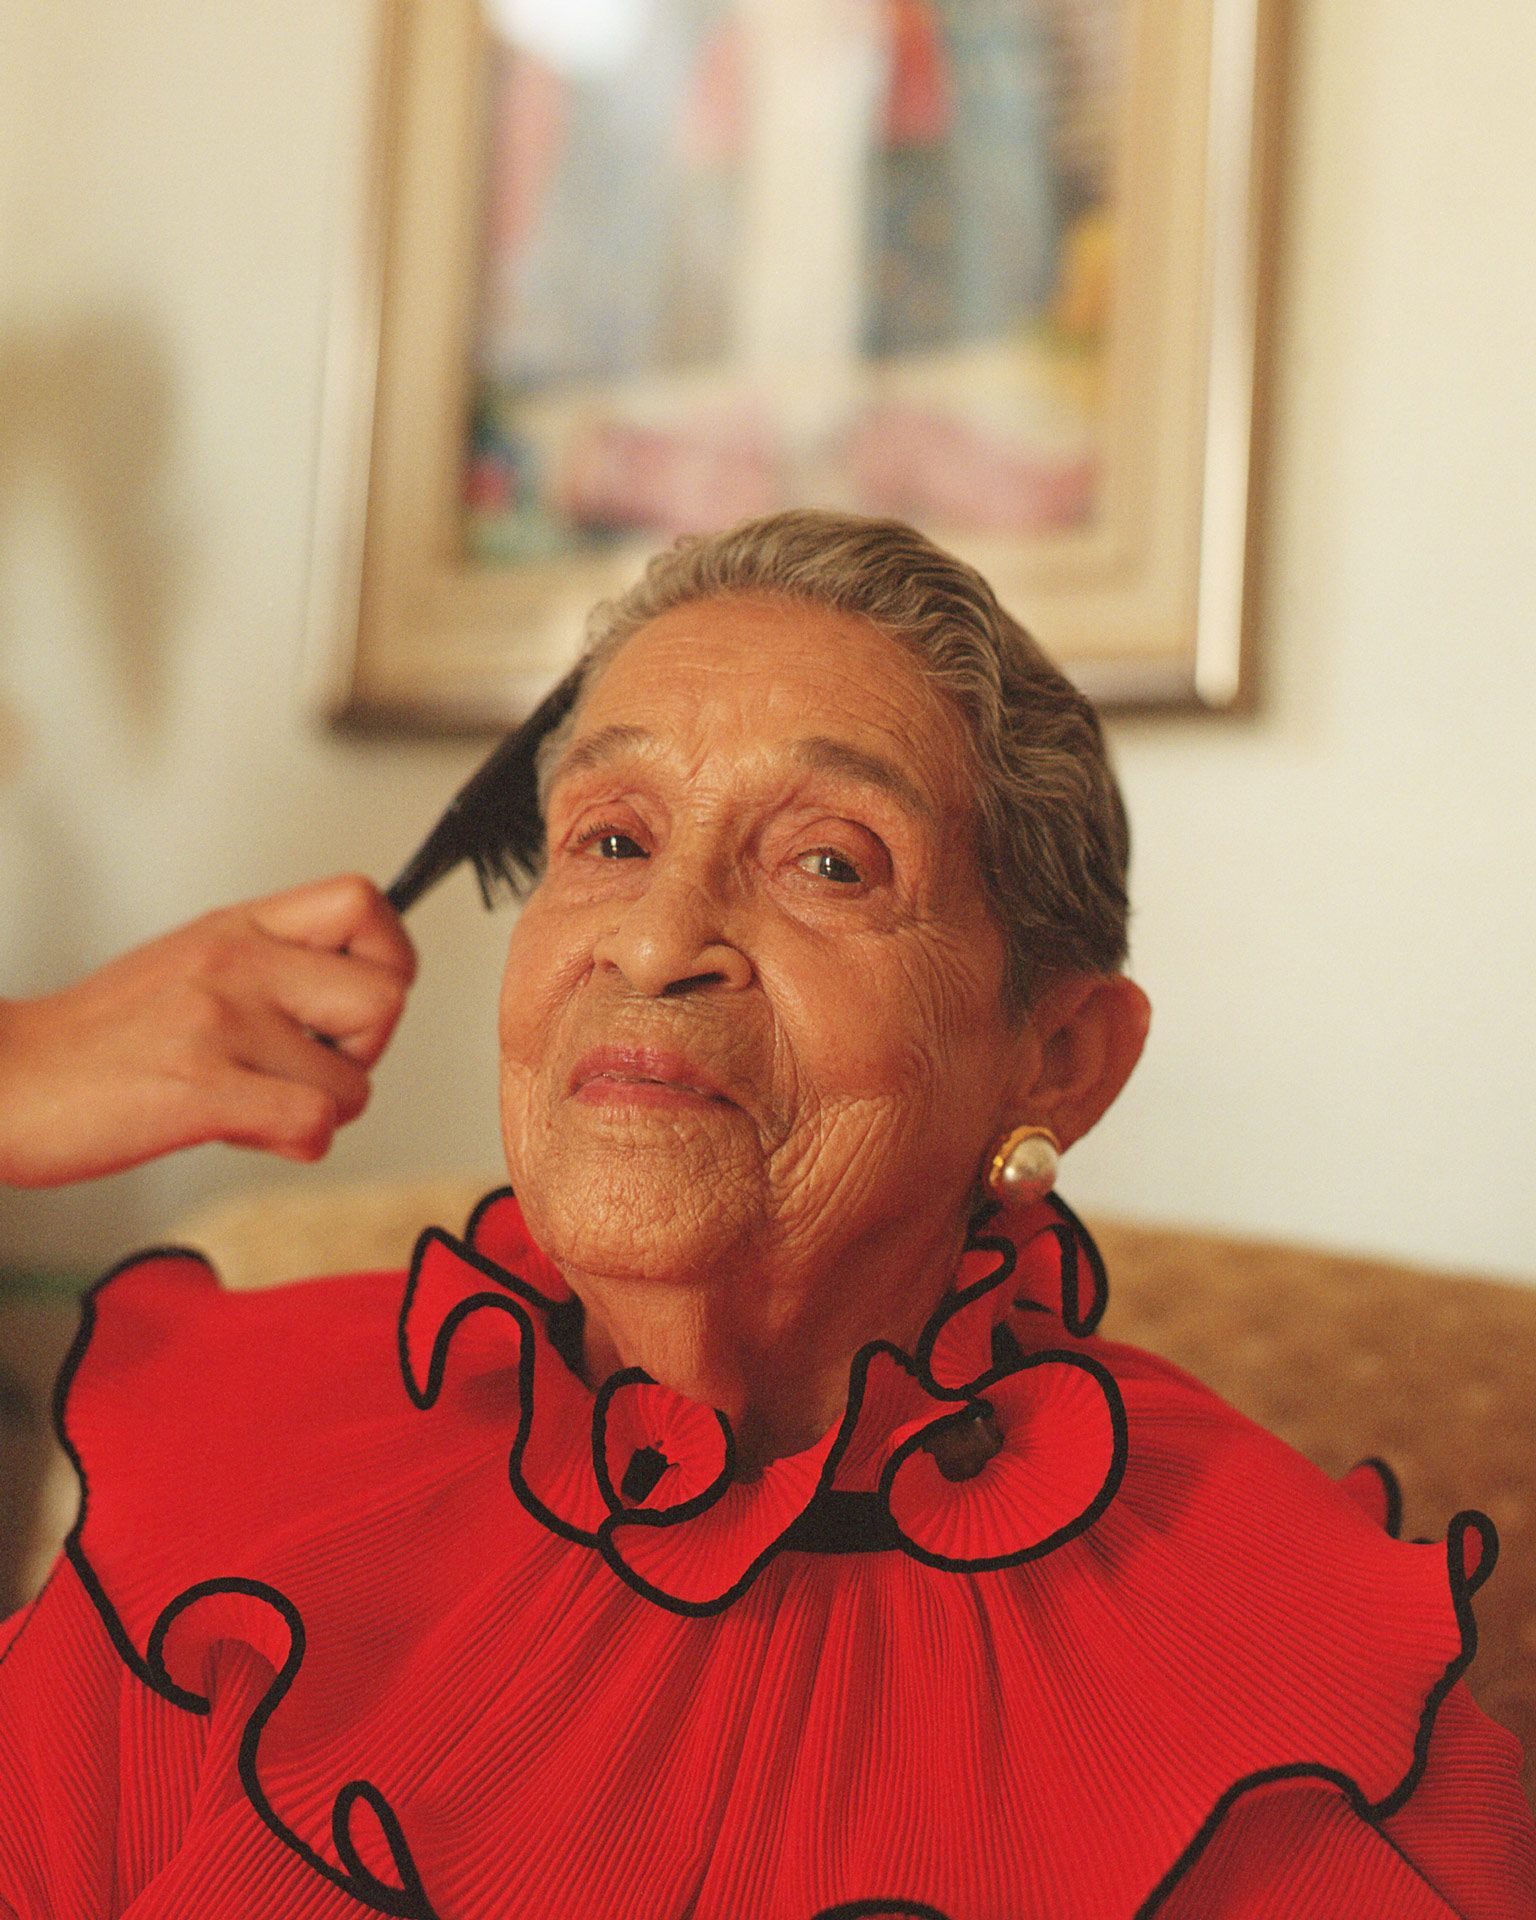 portrait of Altagracia de Pena getting her hair done by her granddaughter looking at camera smiling by Oumayma B. Tanfous for Phosphenes Magazine